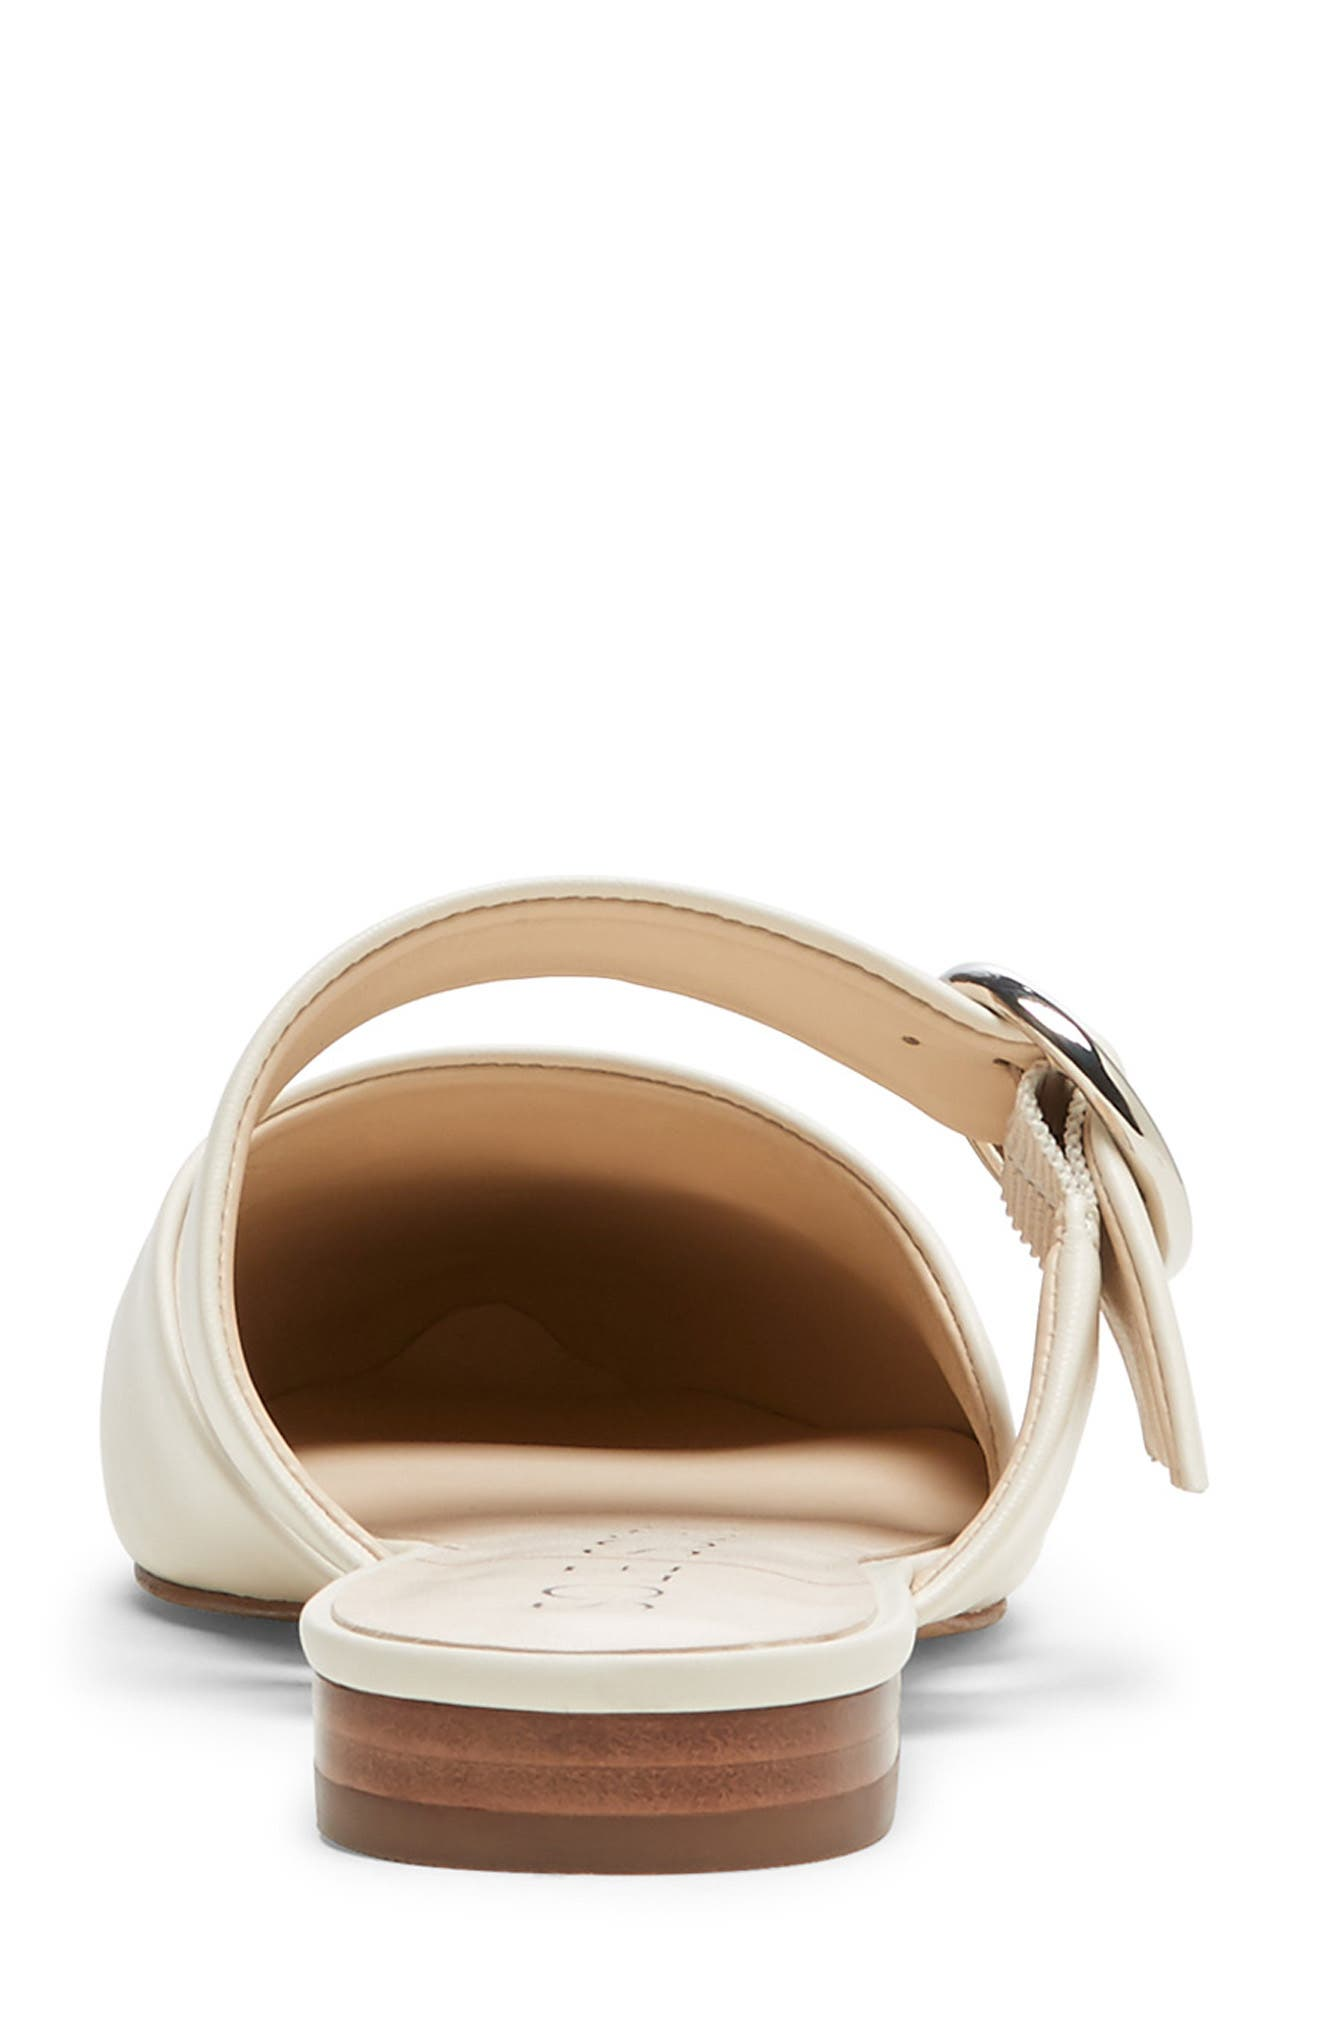 SOLE SOCIETY, Pravar Strappy Pointy Toe Mule, Alternate thumbnail 4, color, CREAM LEATHER